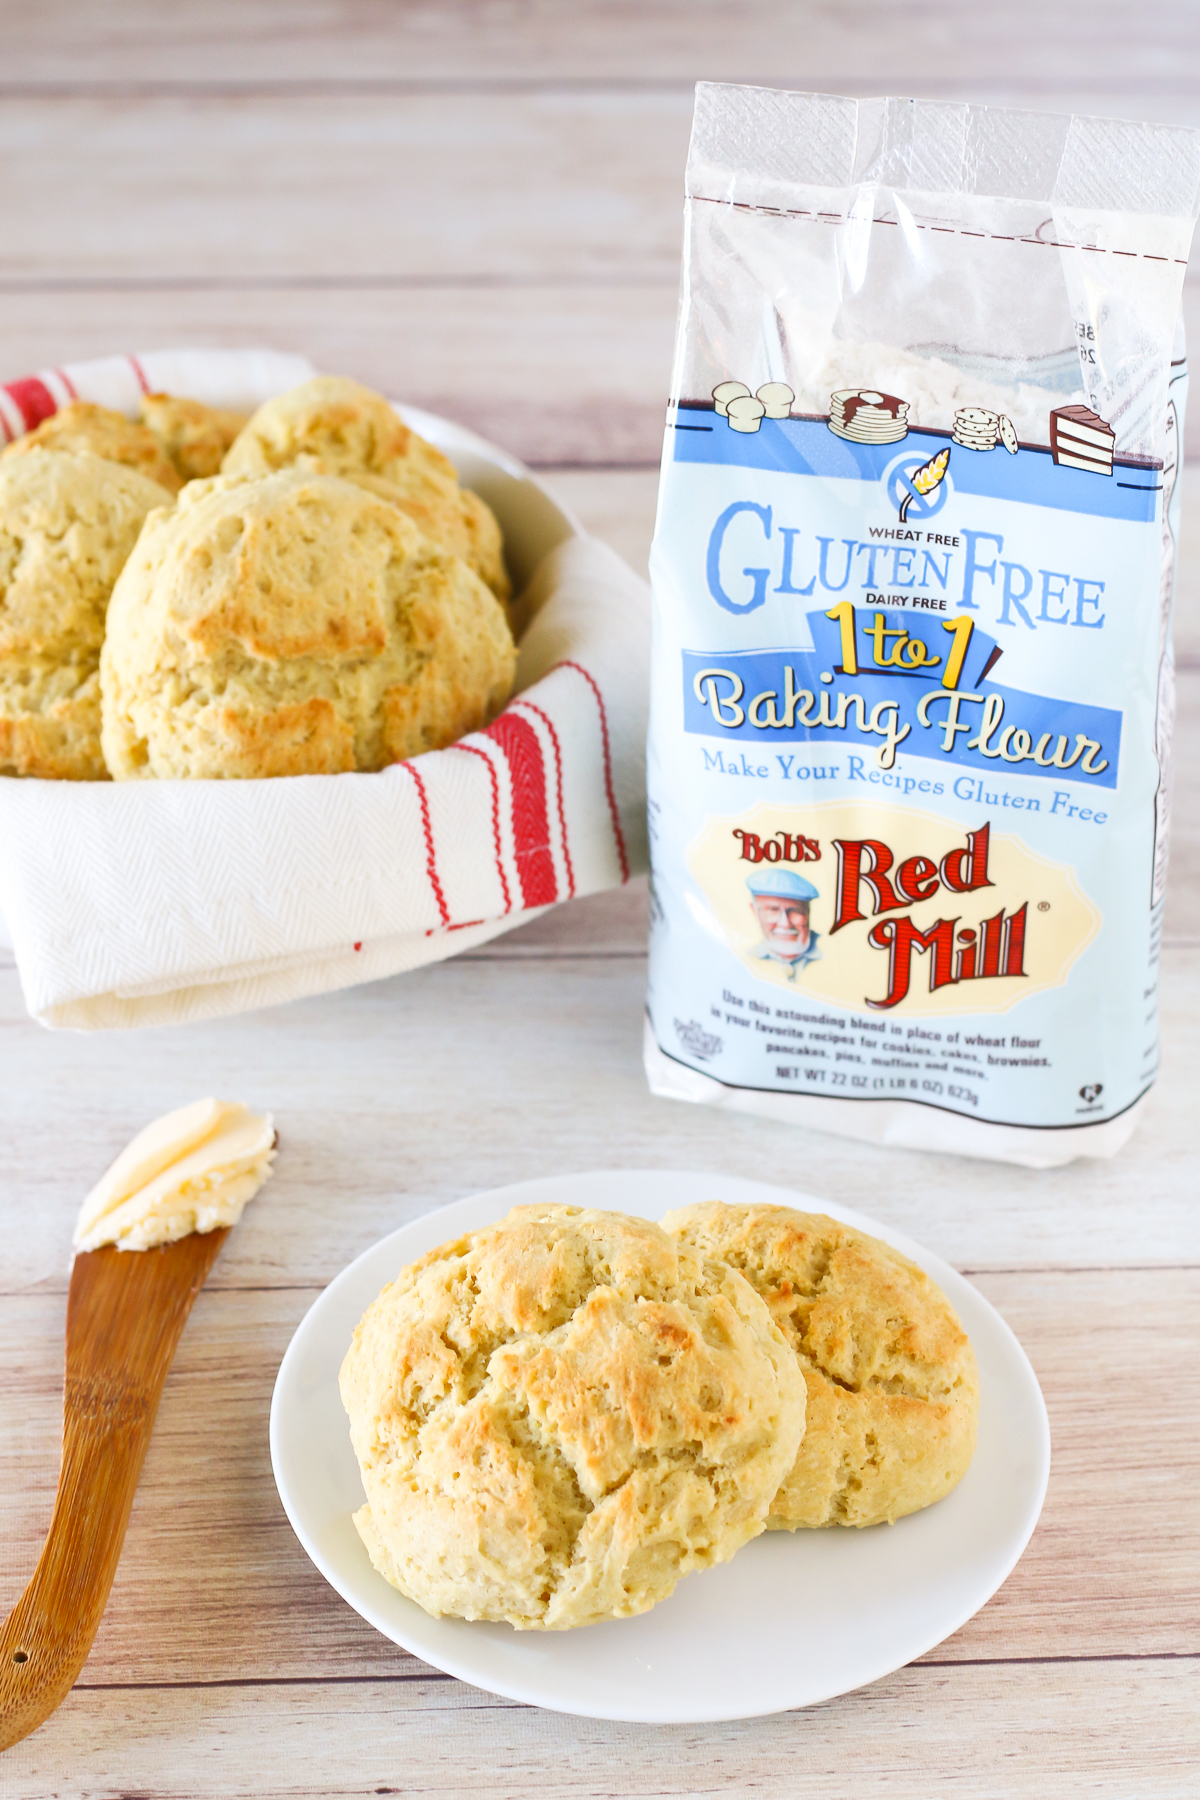 Gluten Free Vegan Drop Biscuits. Made with Bob's Red Mill Gluten Free 1-to-1 Baking Flour. These biscuits are warm, fluffy and oh so tender!